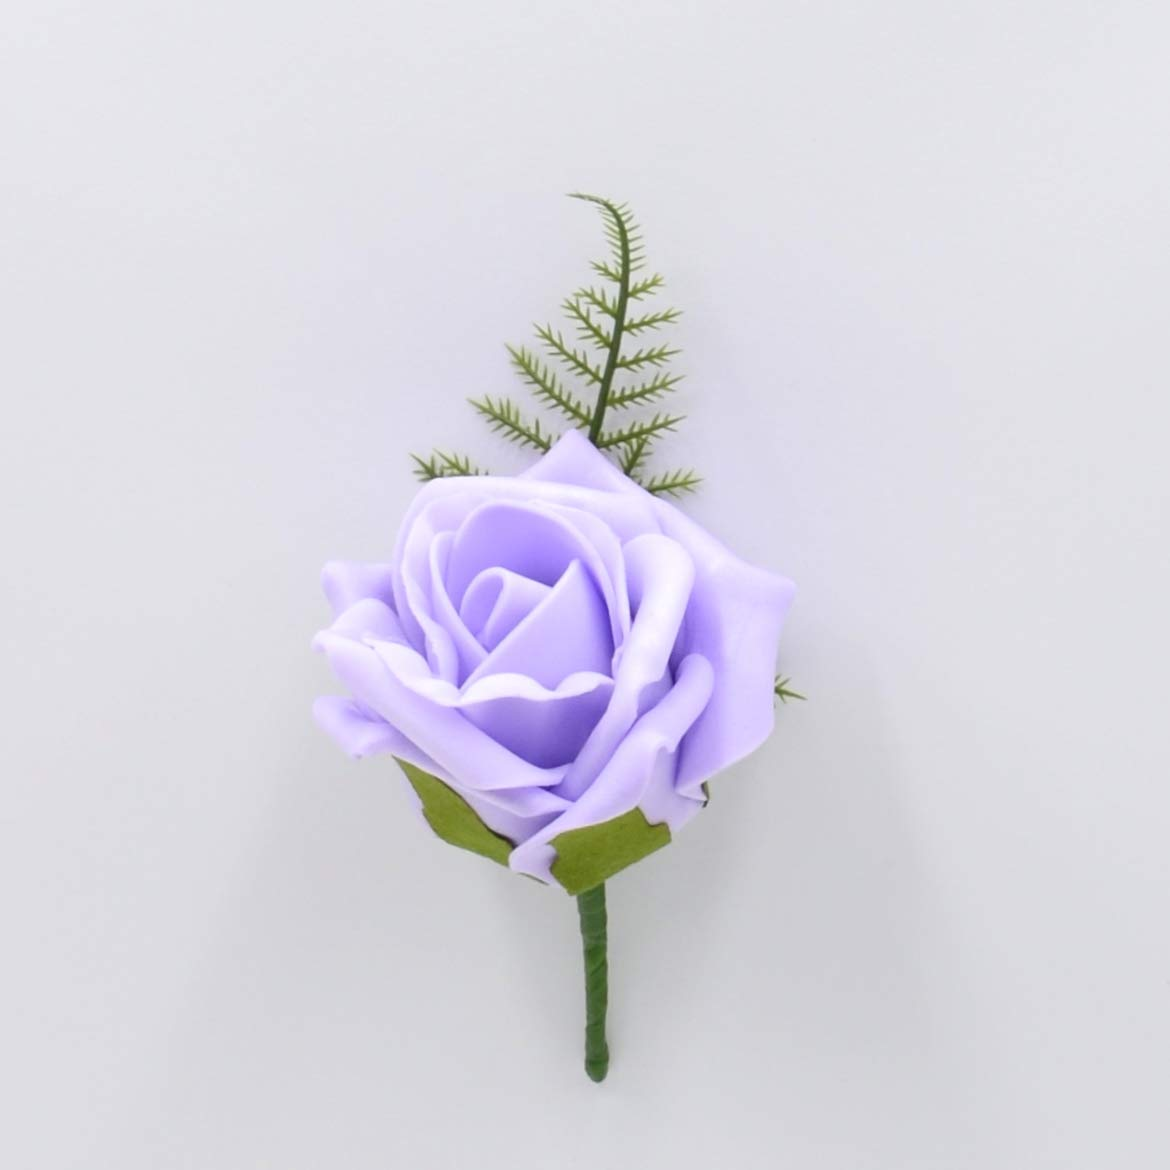 Artificial Wedding Flowers Hand-Made by Petals Polly, Foam Rose Buttonhole in Lilac PETALS POLLY FLOWERS